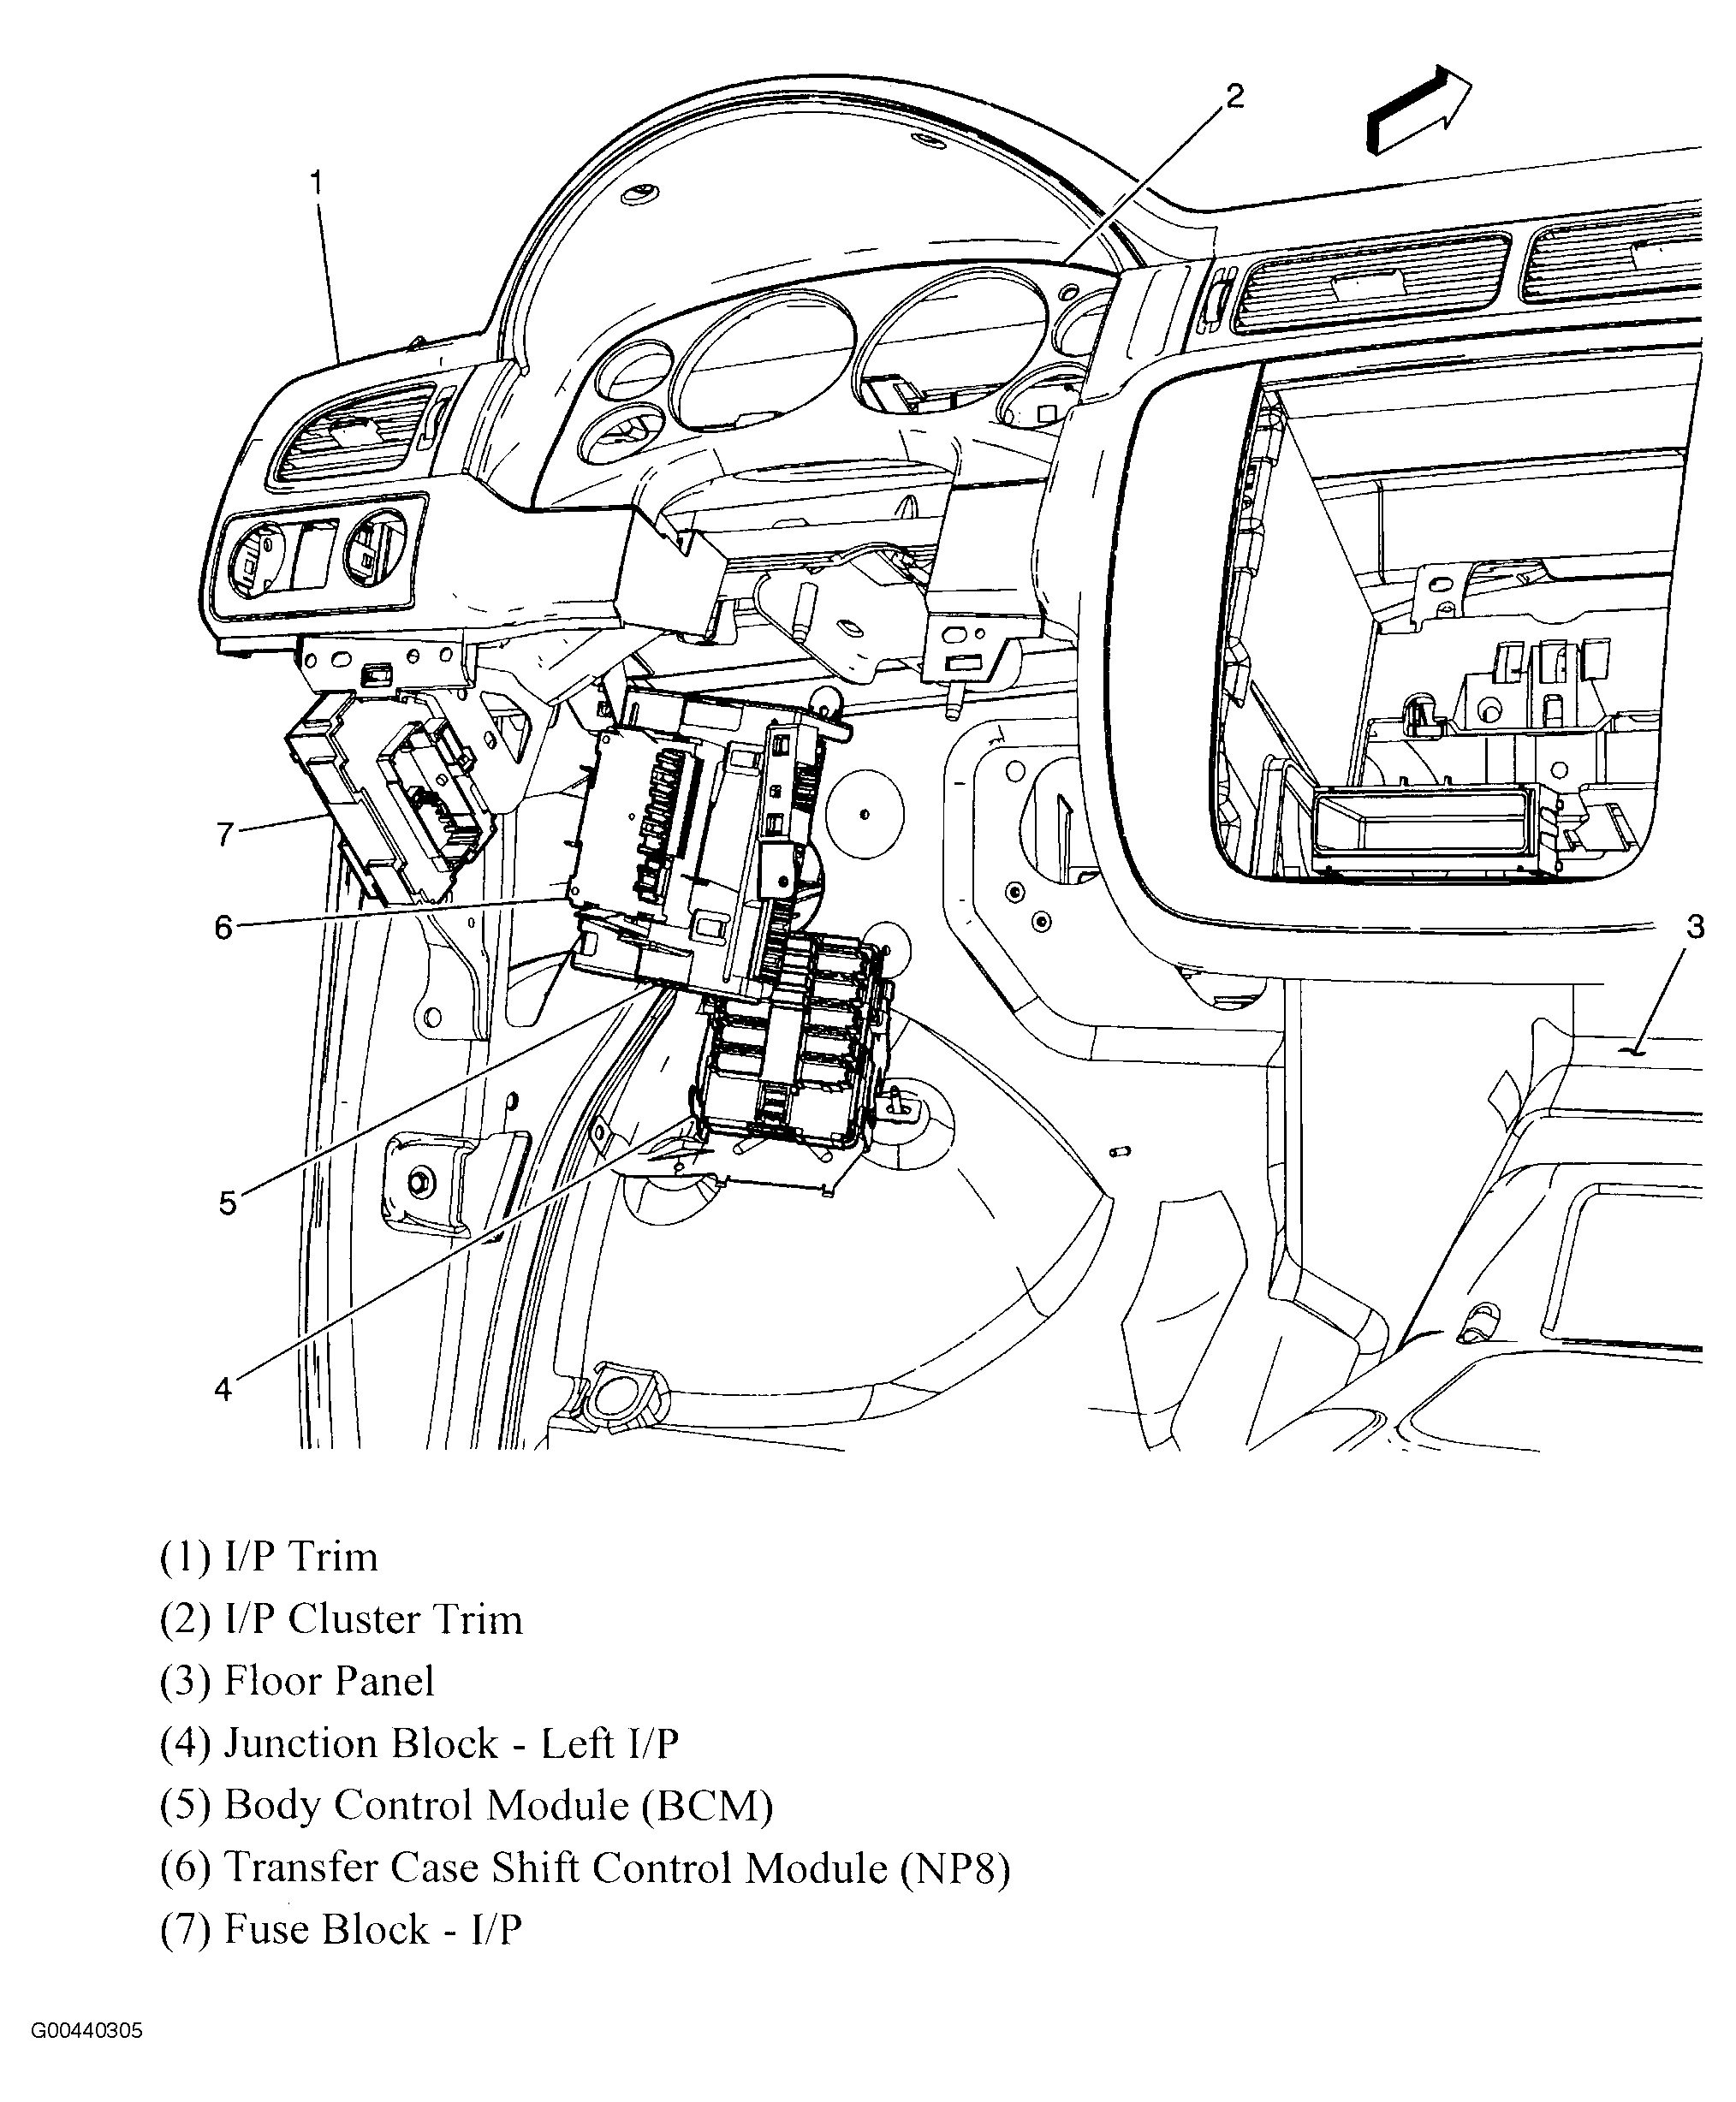 2006 gmc envoy slt parts diagram